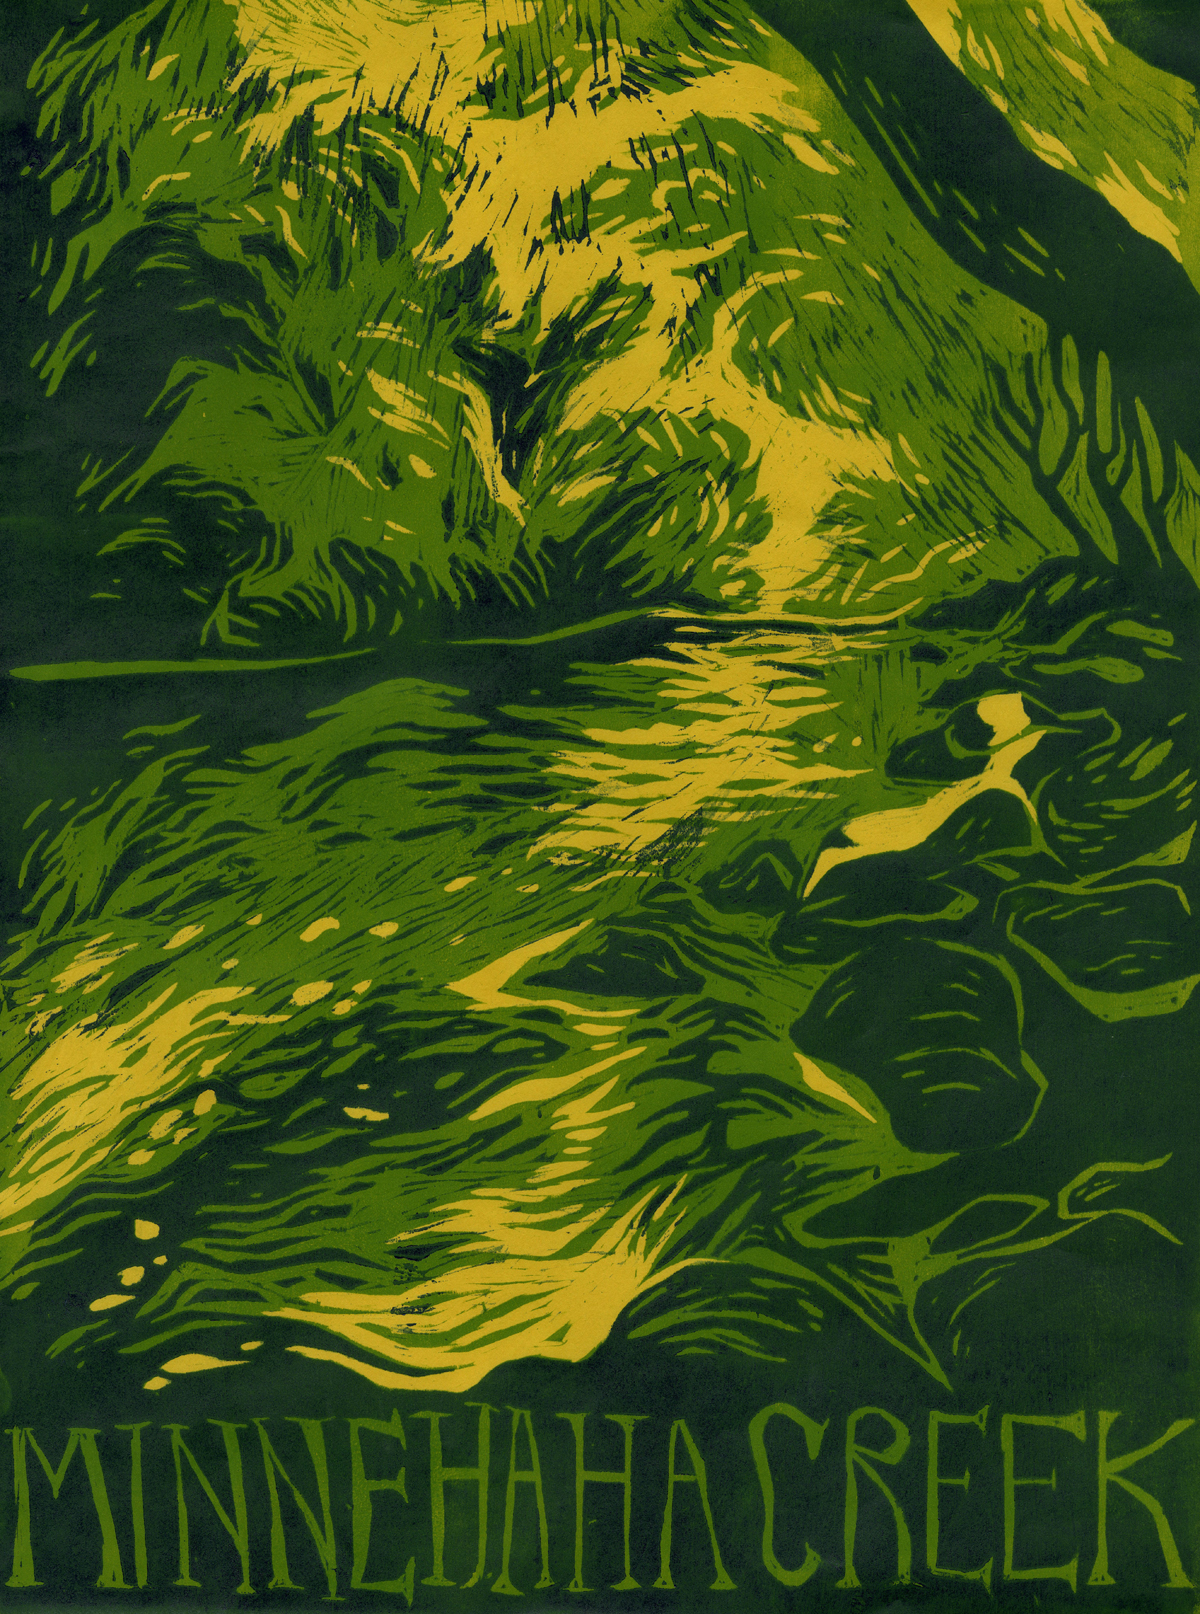 Minnehaha Creek poster by Lucy Comer